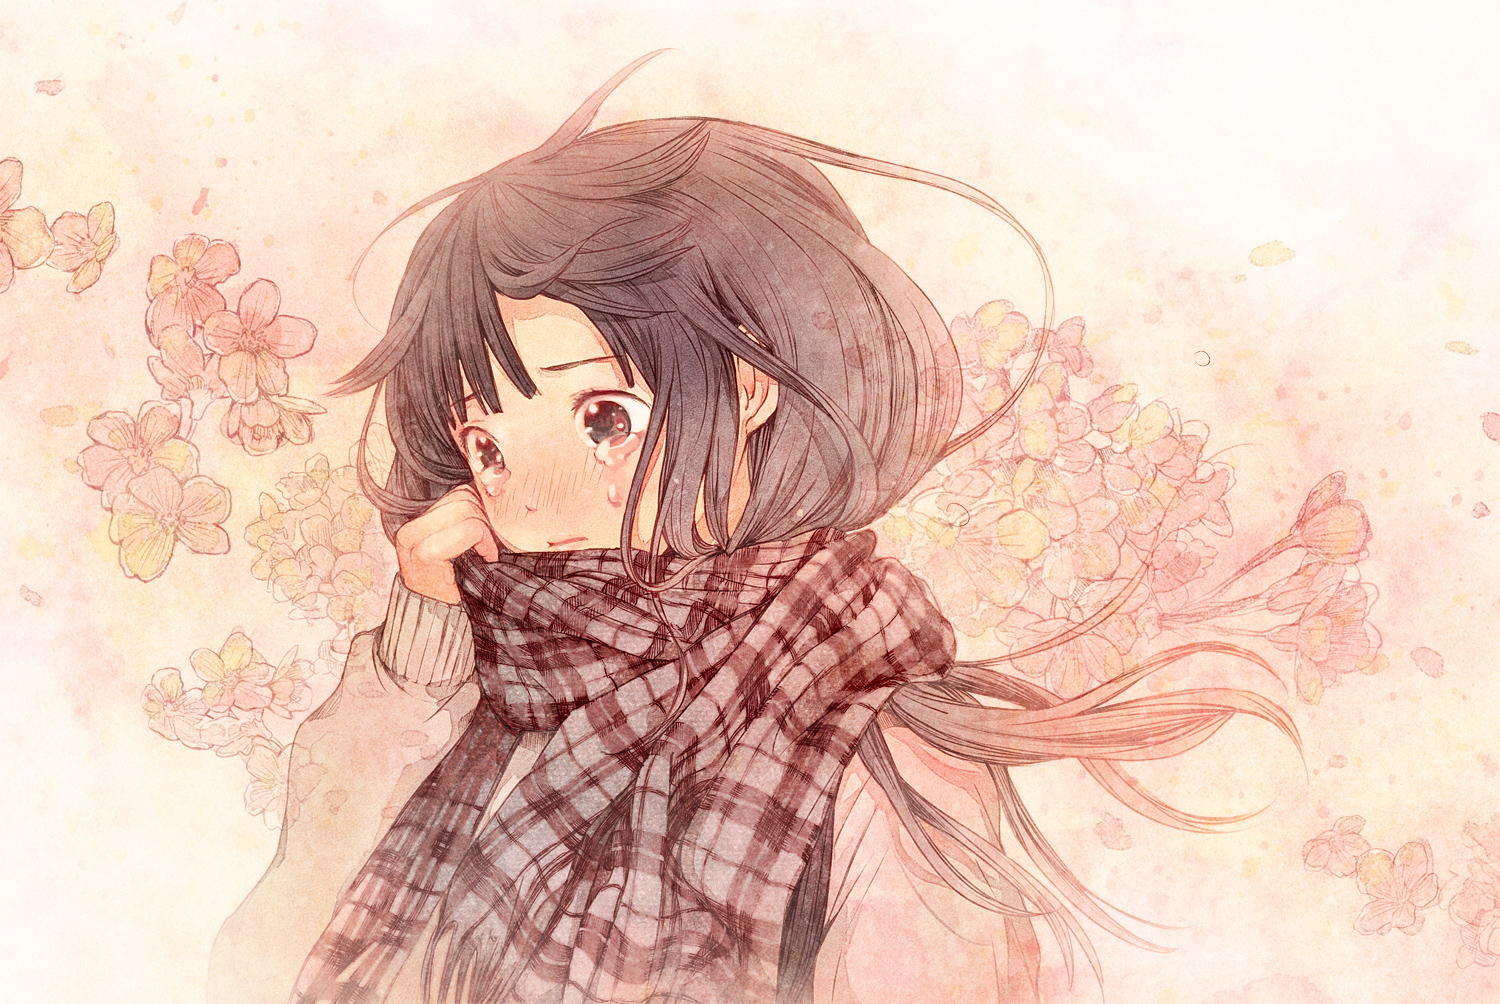 blush cherry_blossoms plasm sayoko sayonara_memories scarf tears